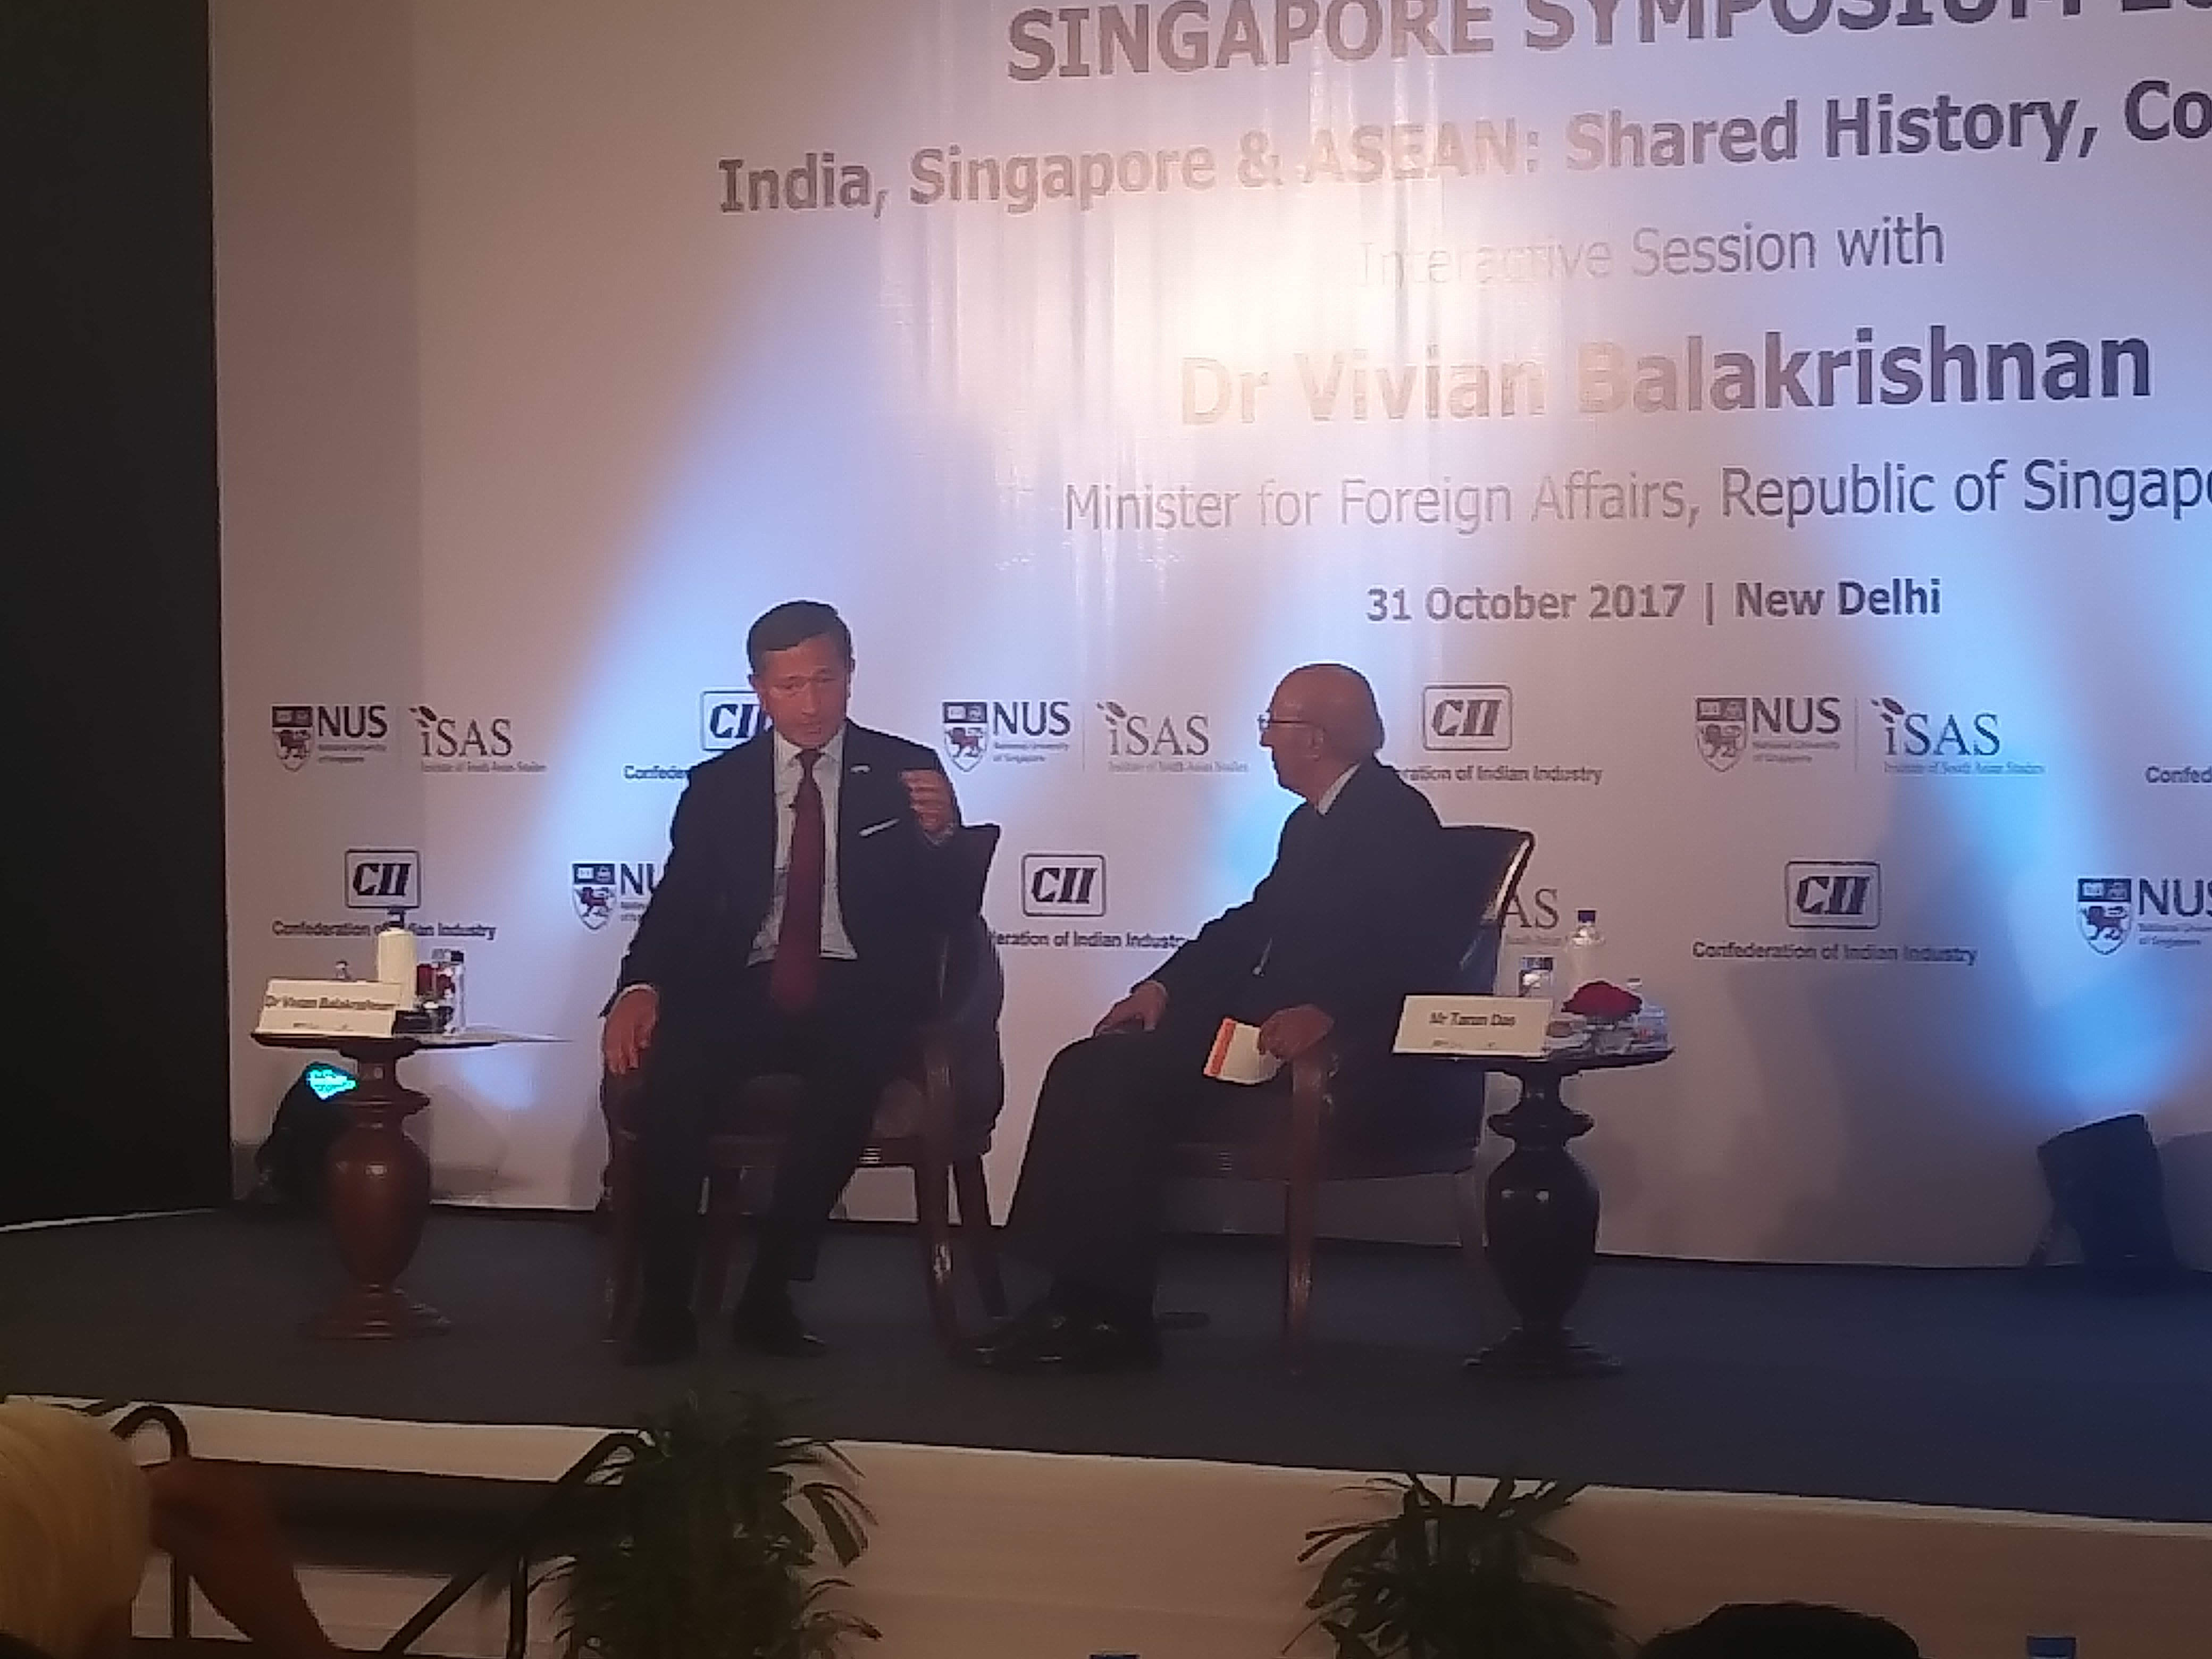 Singapore's Minister for Foreign Affairs Dr Vivian Balakrishnan (left) during an interactive sessison moderated by former CII chairman Tarun Das. Photo: Connected to India